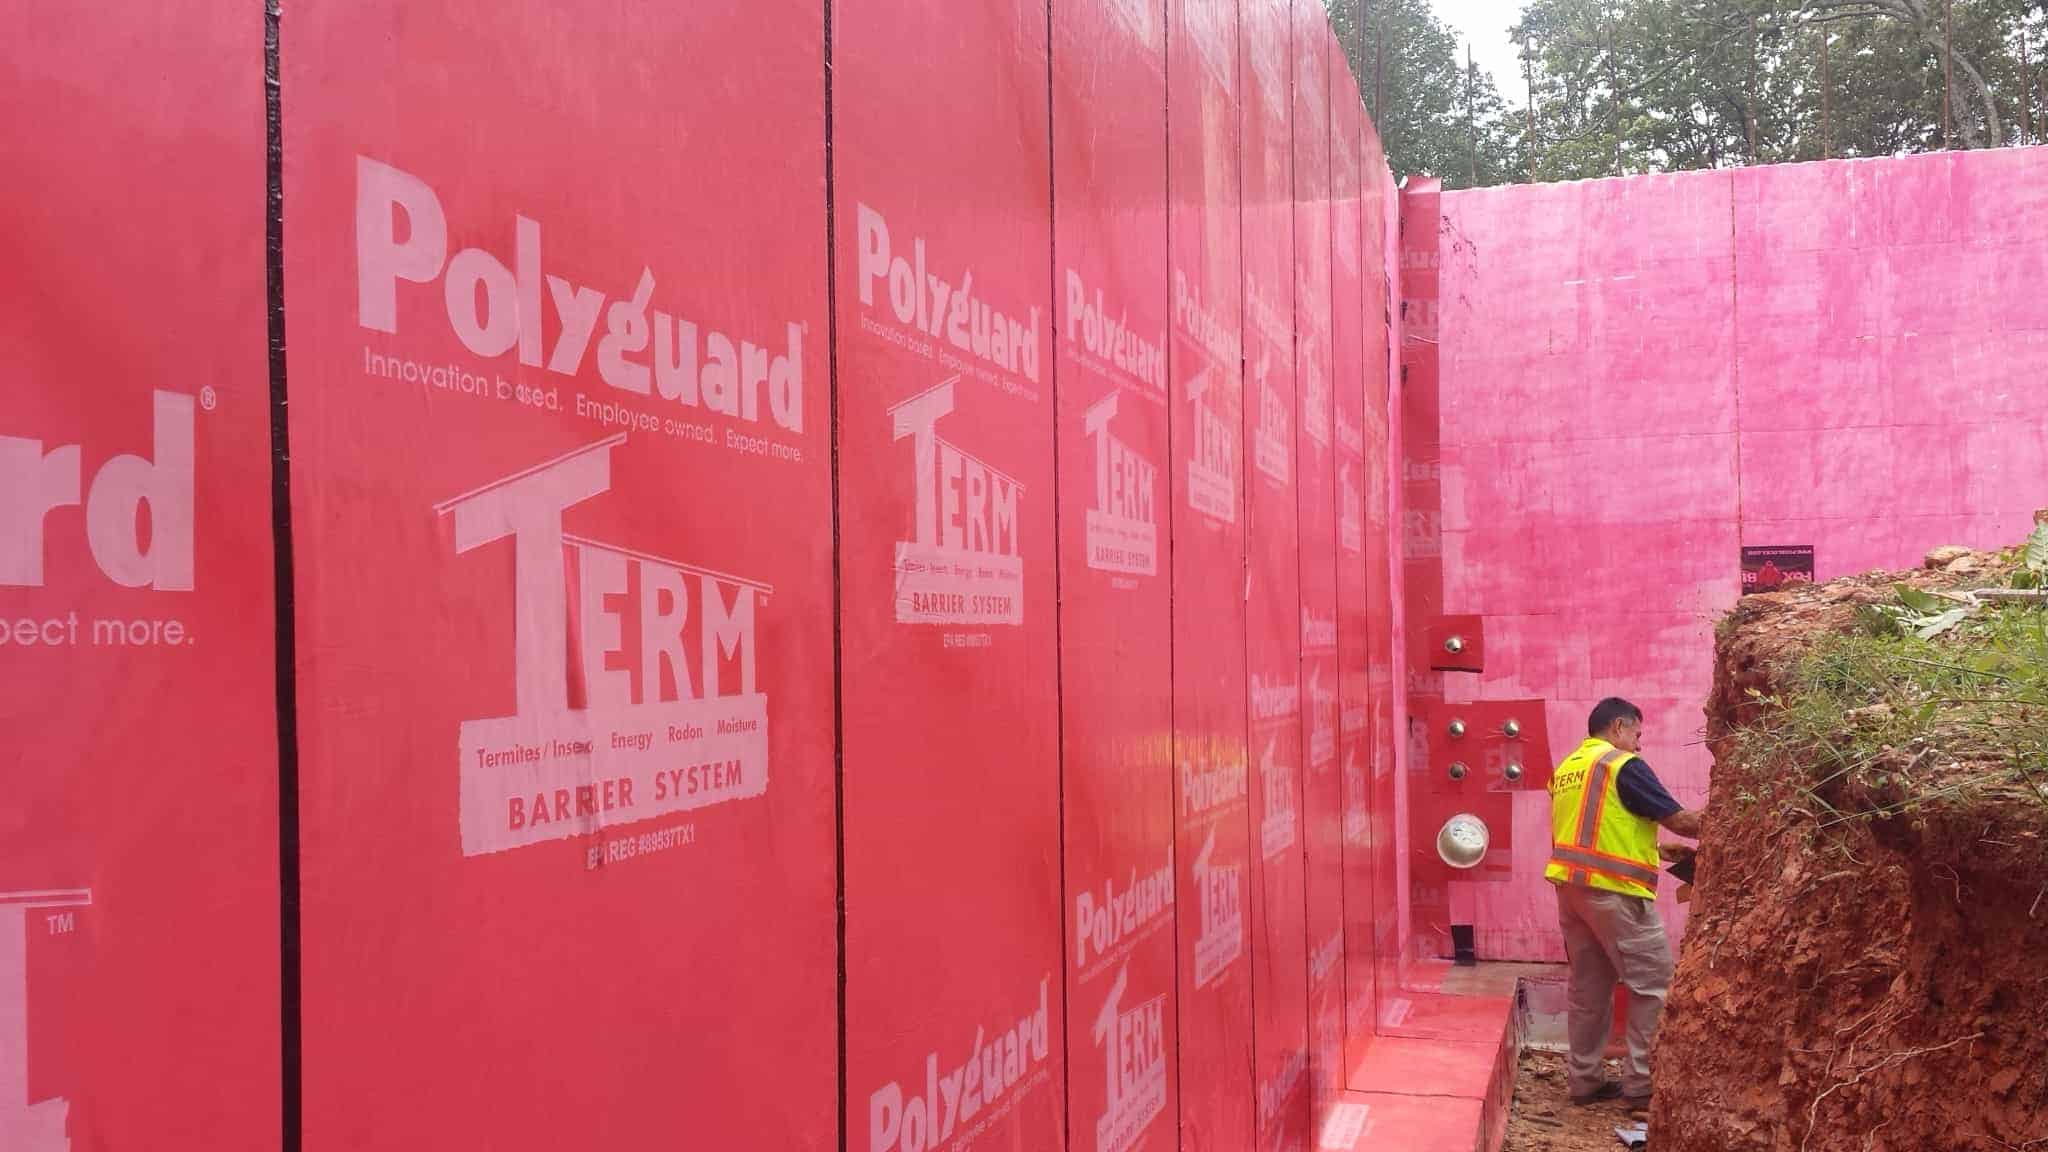 Polyguard® TERM® Foundation Barrier